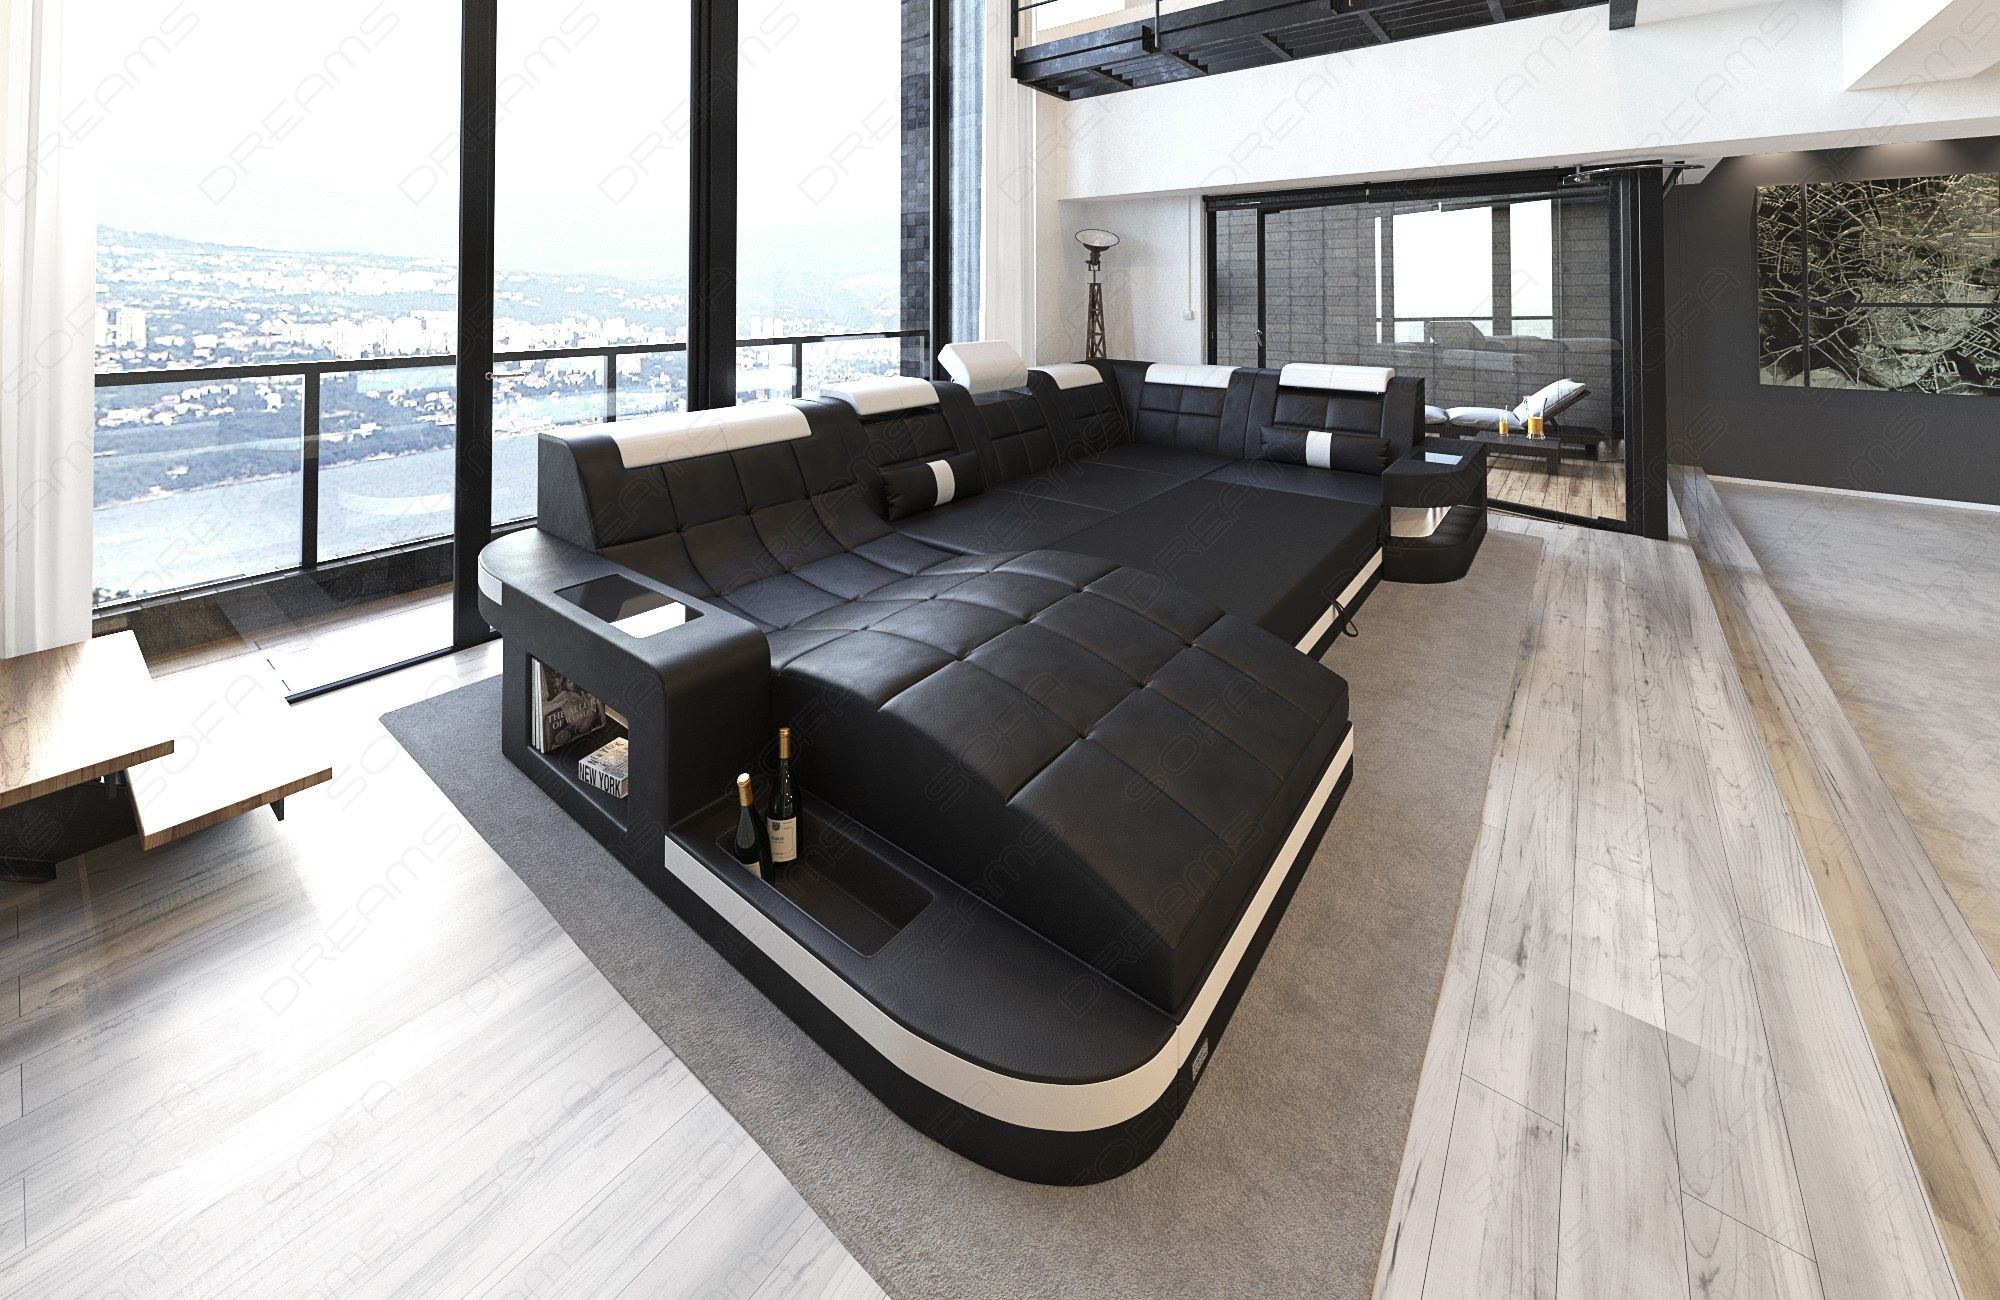 wohnlandschaft wave u form luxus couch garnitur mit led rgb beleuchtung ecksofa ebay. Black Bedroom Furniture Sets. Home Design Ideas